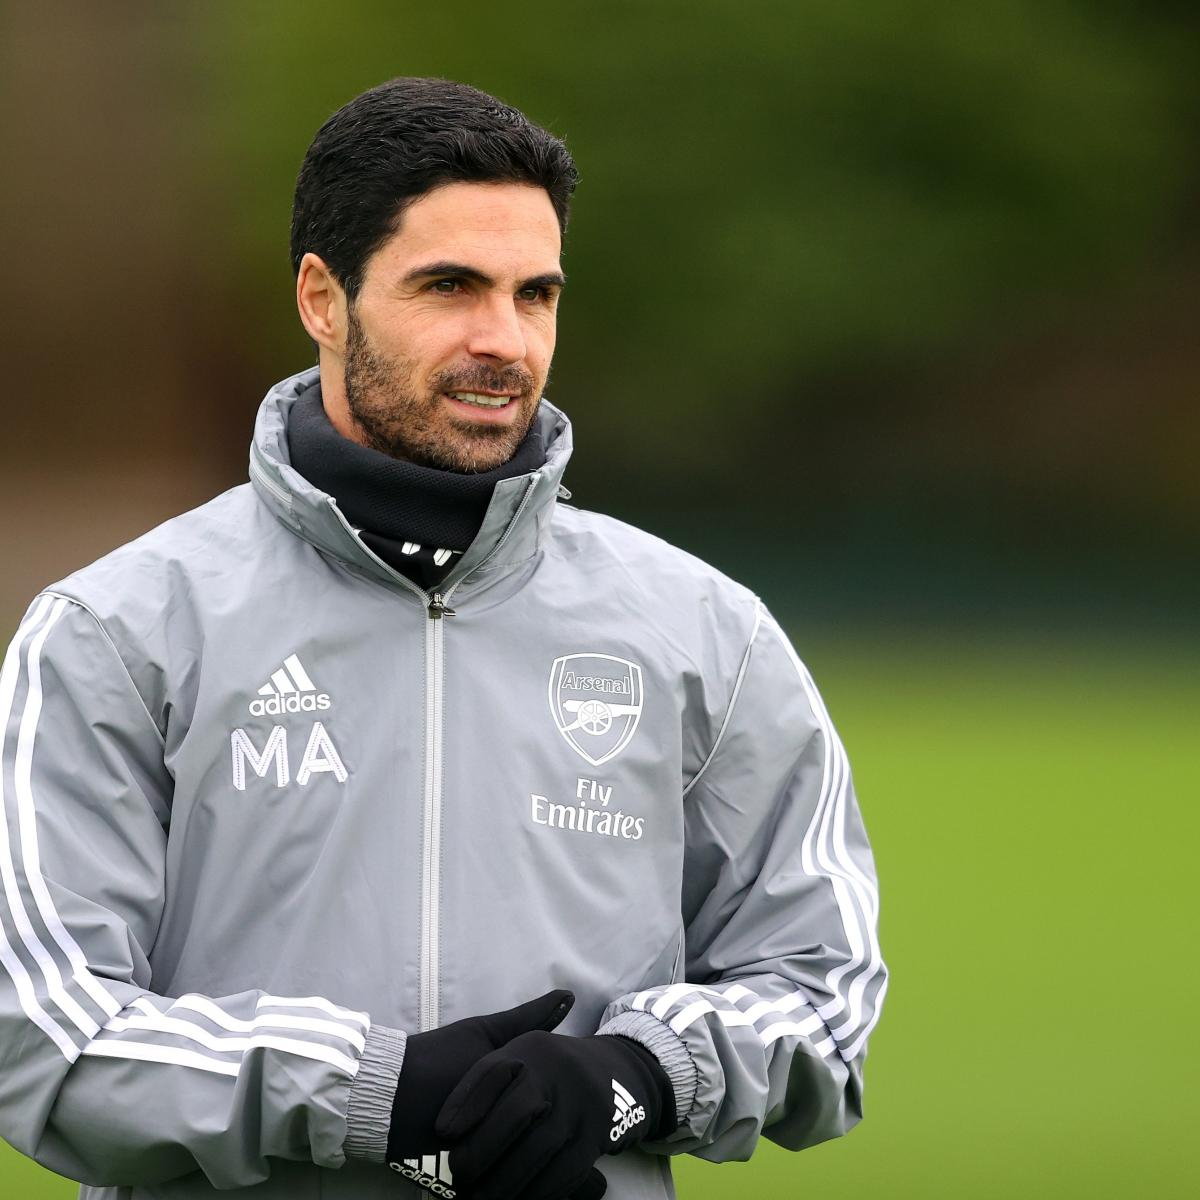 Mikel Arteta Says Dropping Matteo Guendouzi 'Was About the Way We Train'